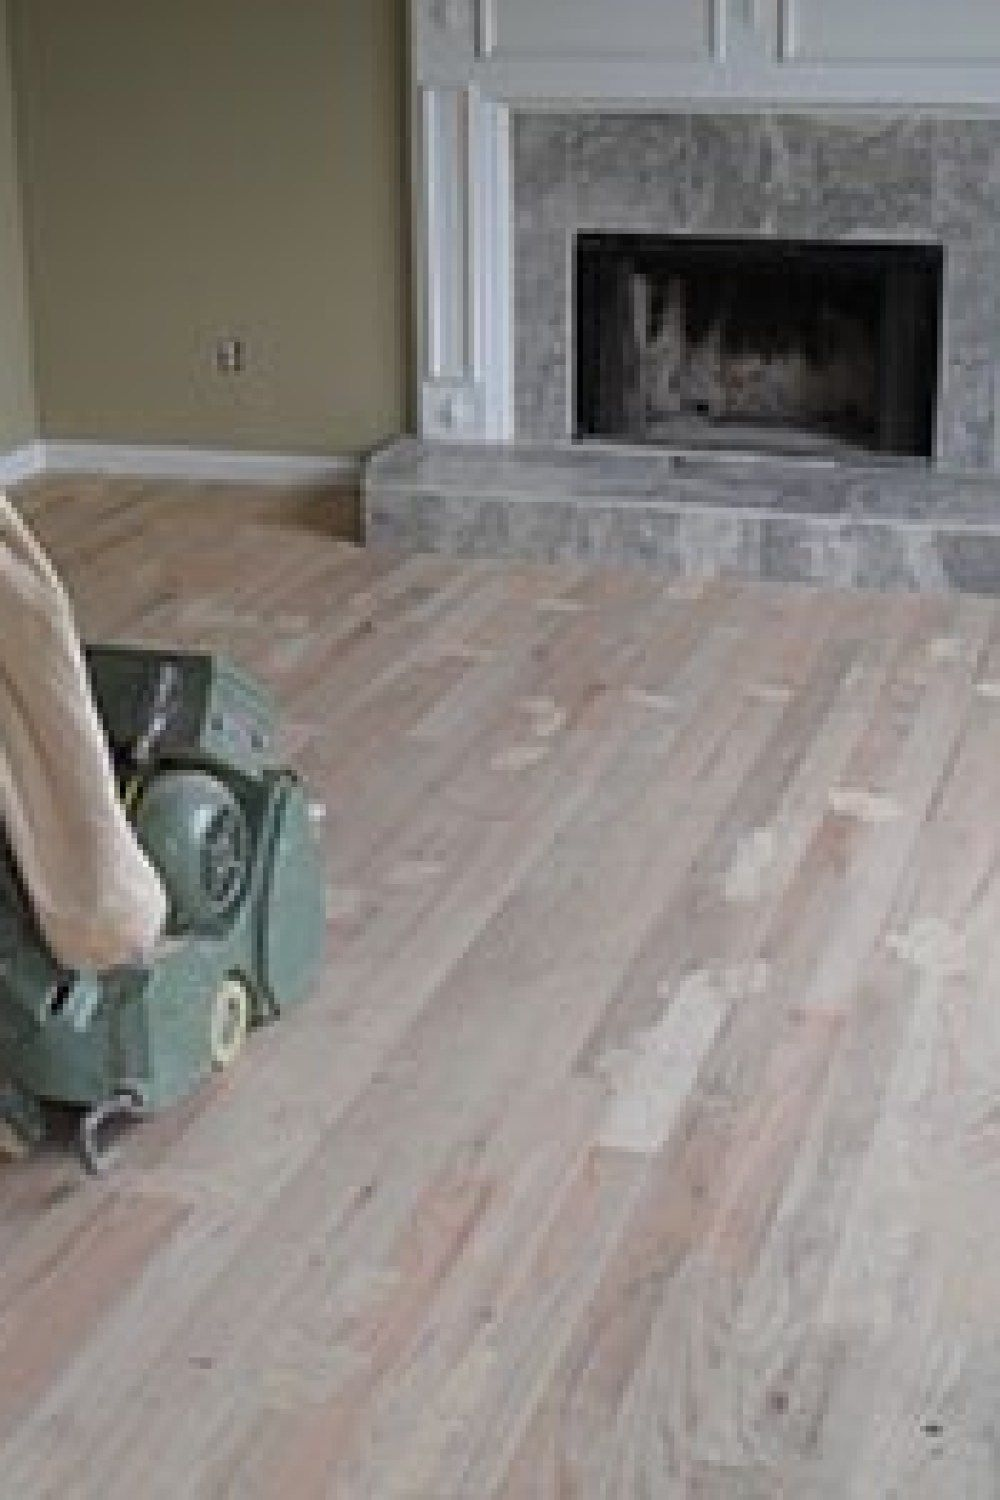 How Much Does It Cost For Hardwood Floors 1500 Sf? in 2020